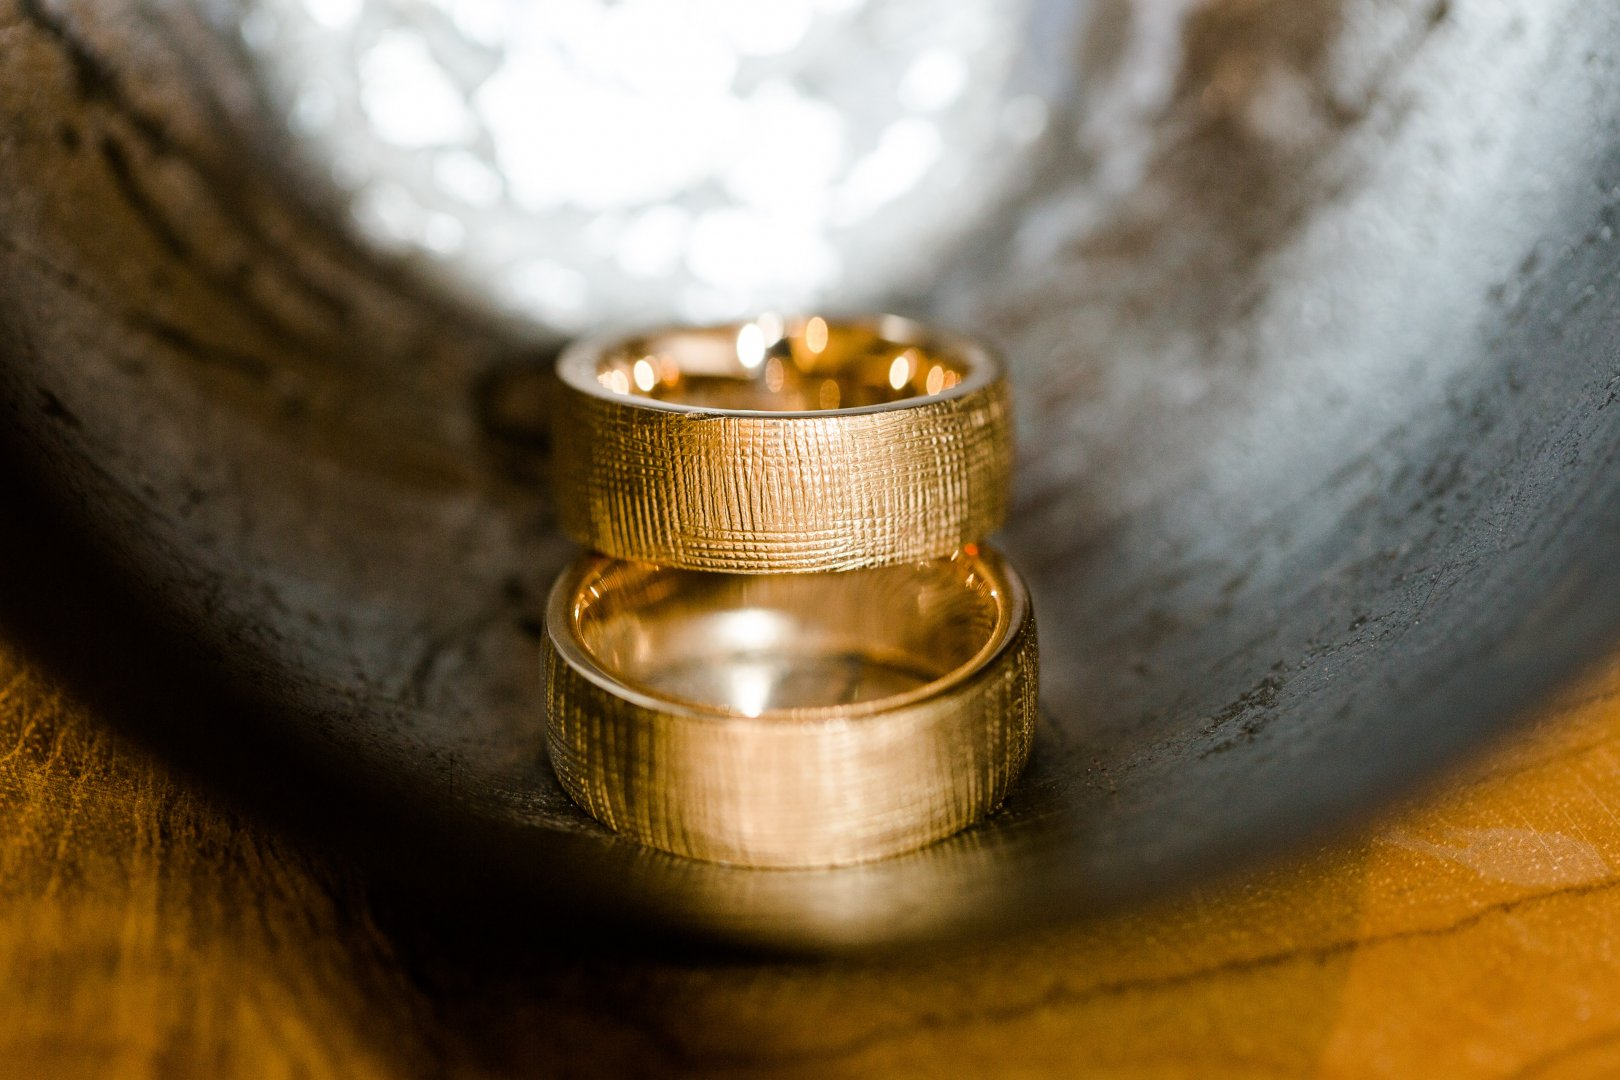 Wedding ring Ring Wedding ceremony supply Brass Metal Close-up Photography Fashion accessory Jewellery Macro photography Gold Still life photography